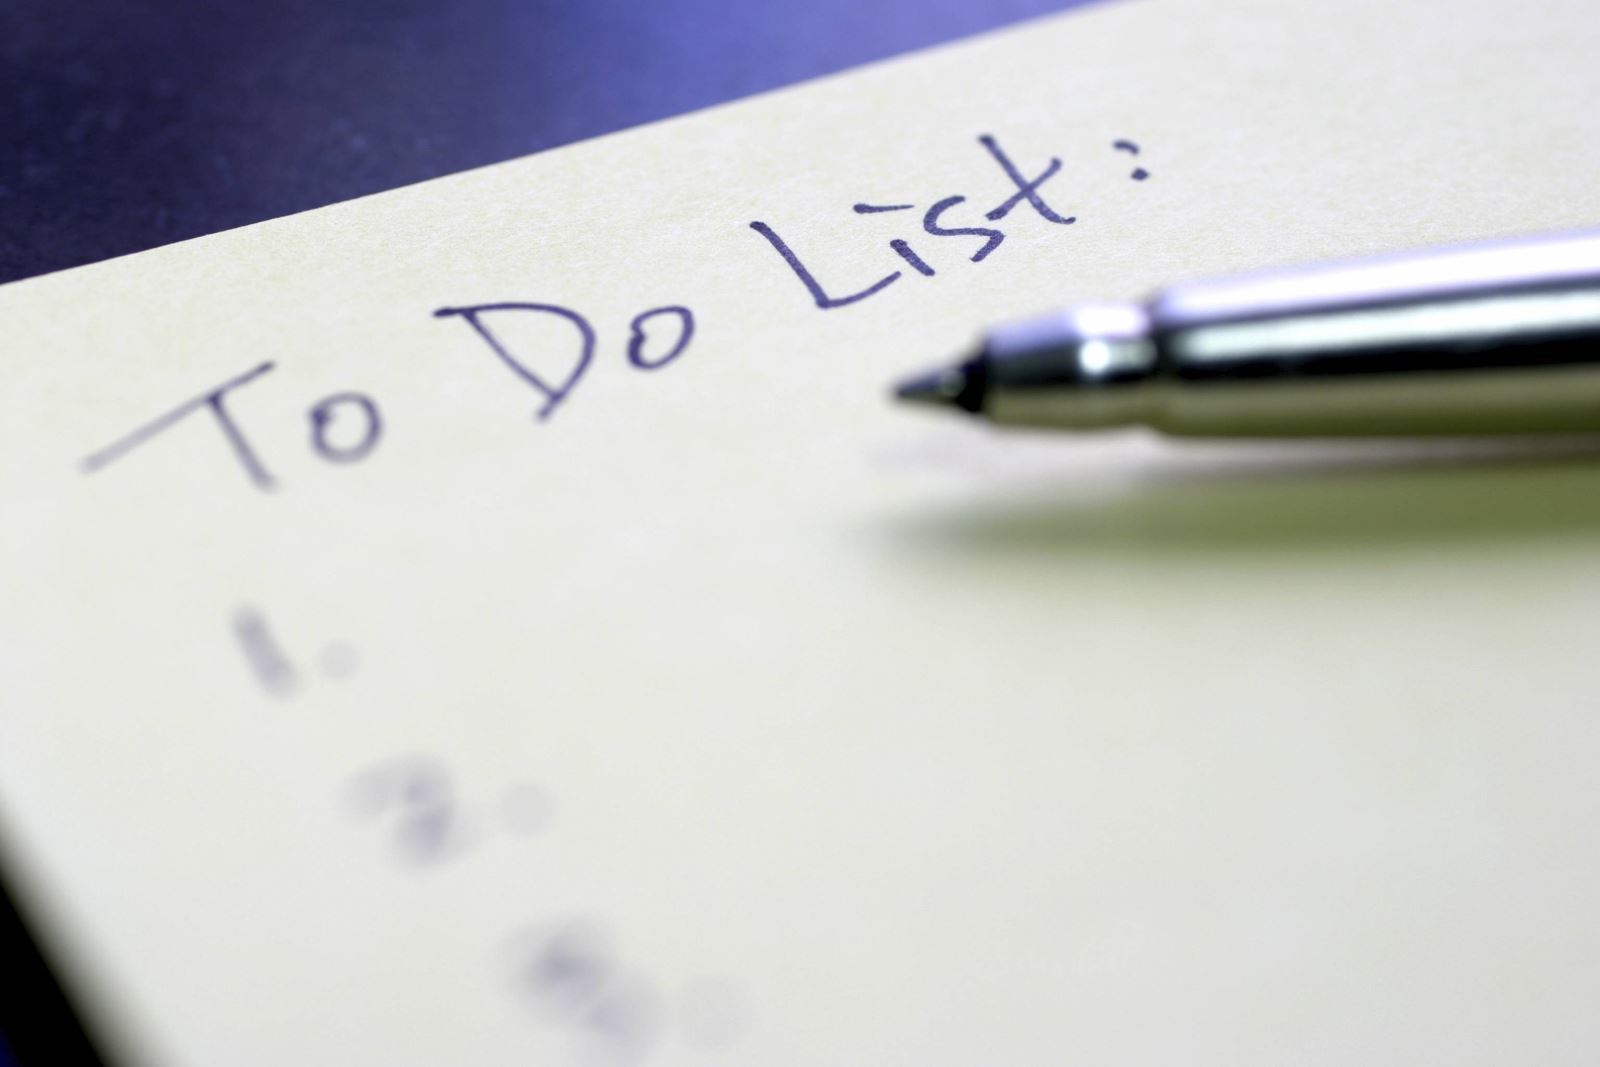 TEP at the top of the to-do list for advisors